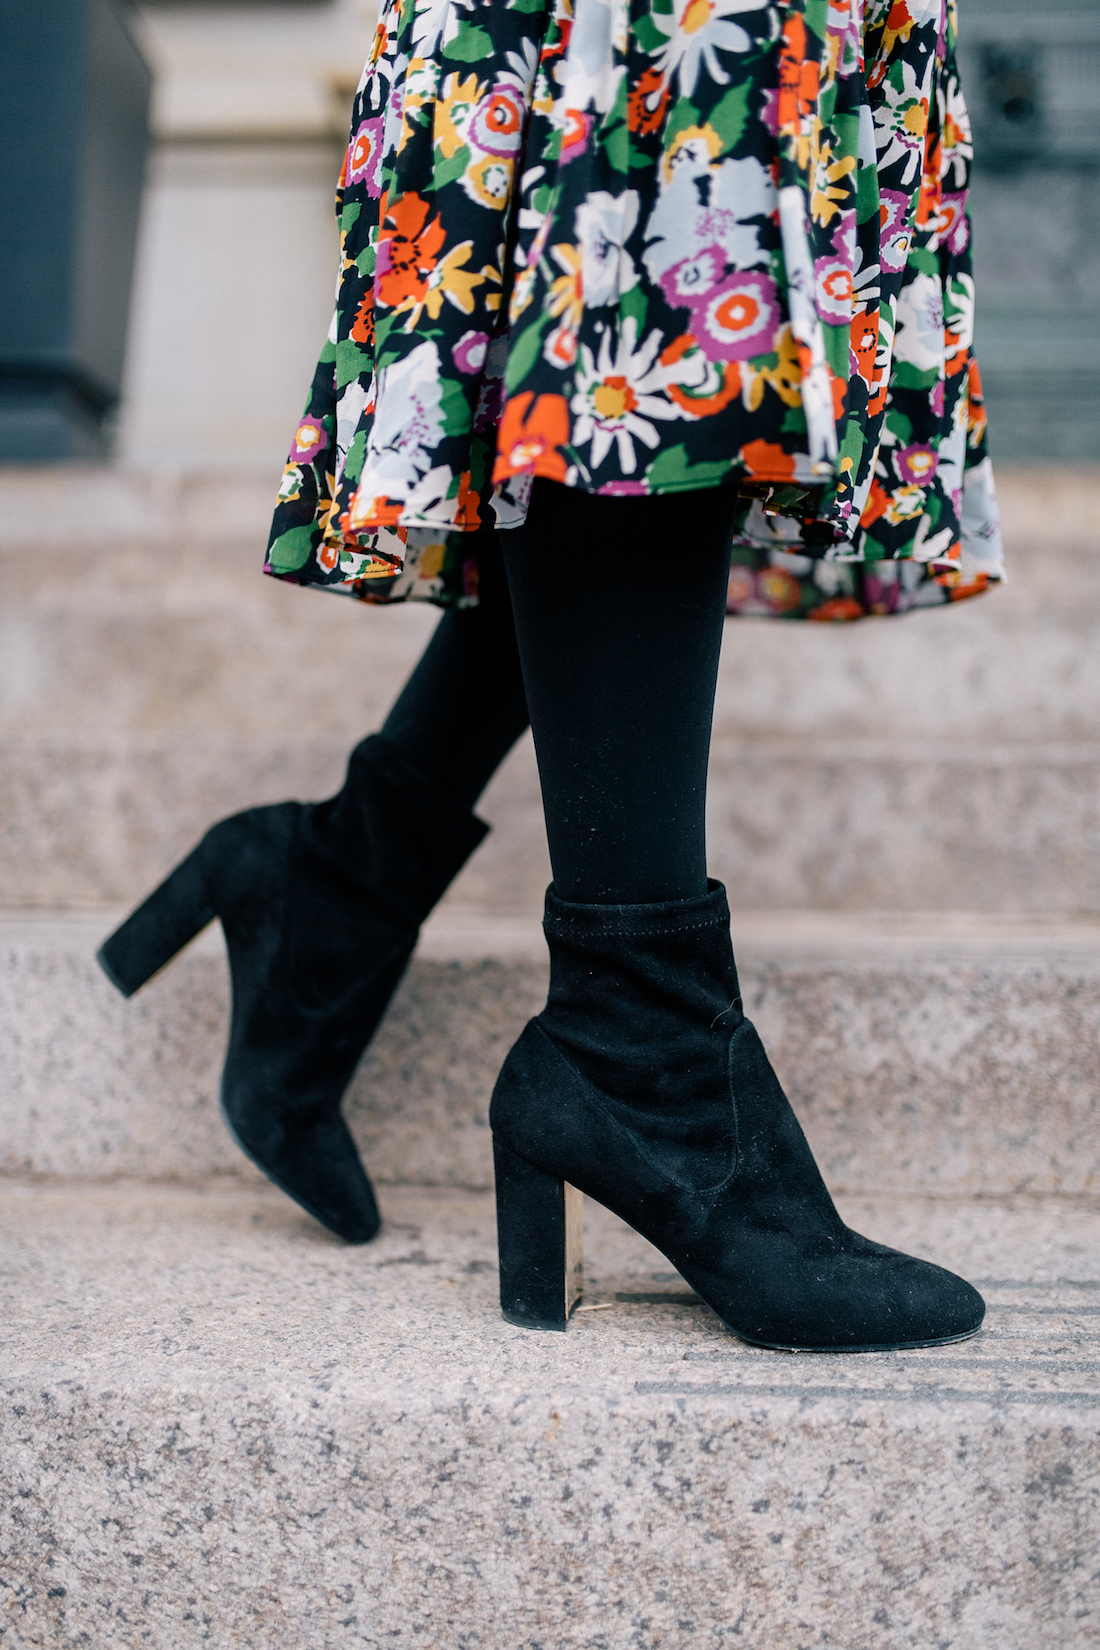 Express Tights// Marion Parke Boots